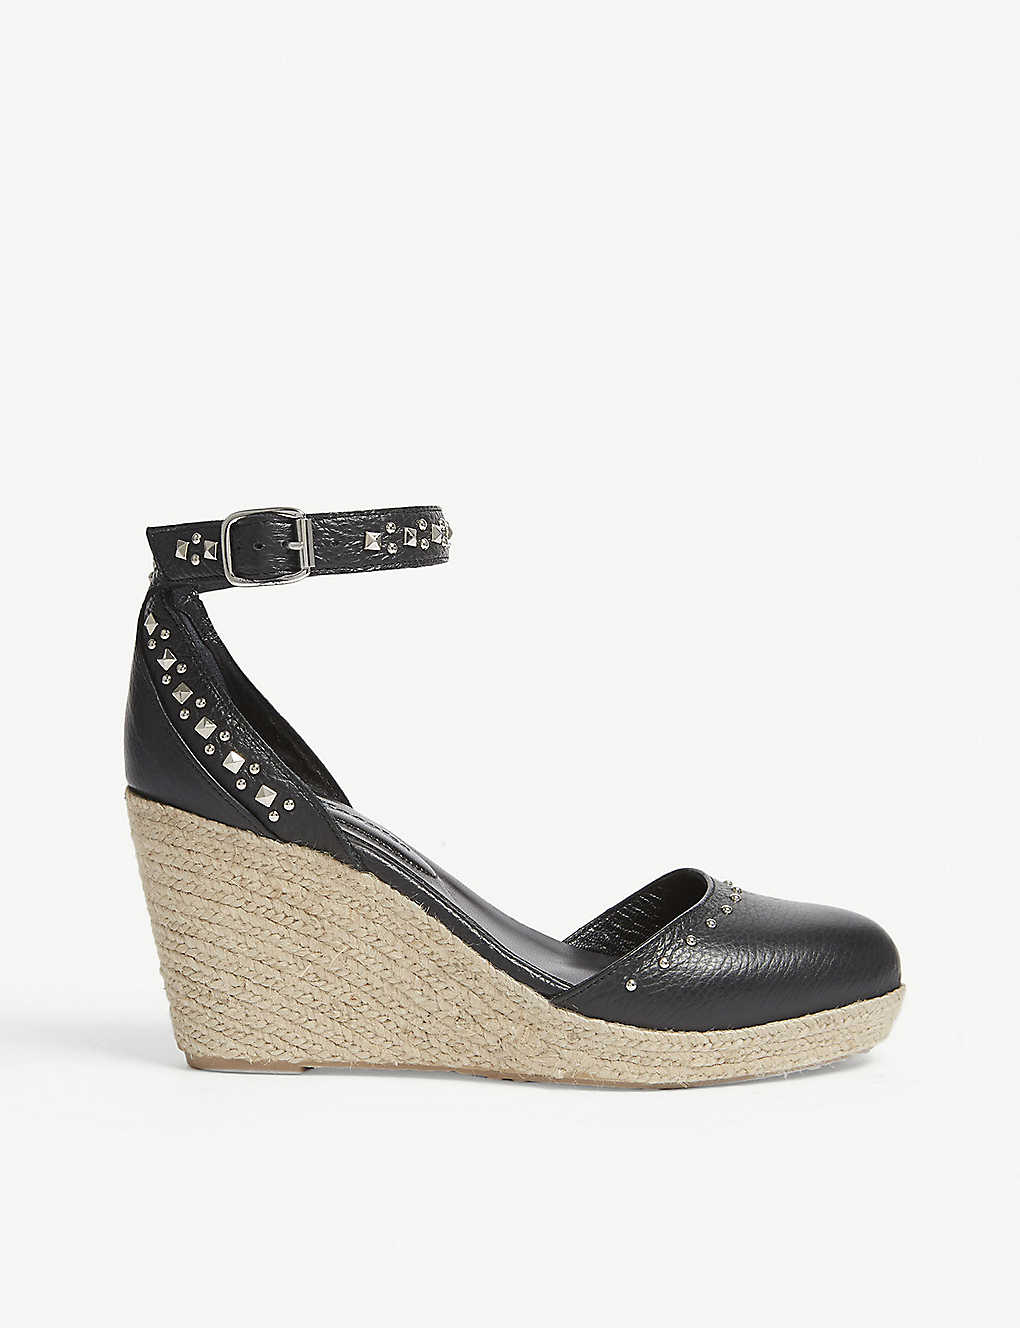 548a1369d88 THE KOOPLES - Studded leather heeled sandals | Selfridges.com